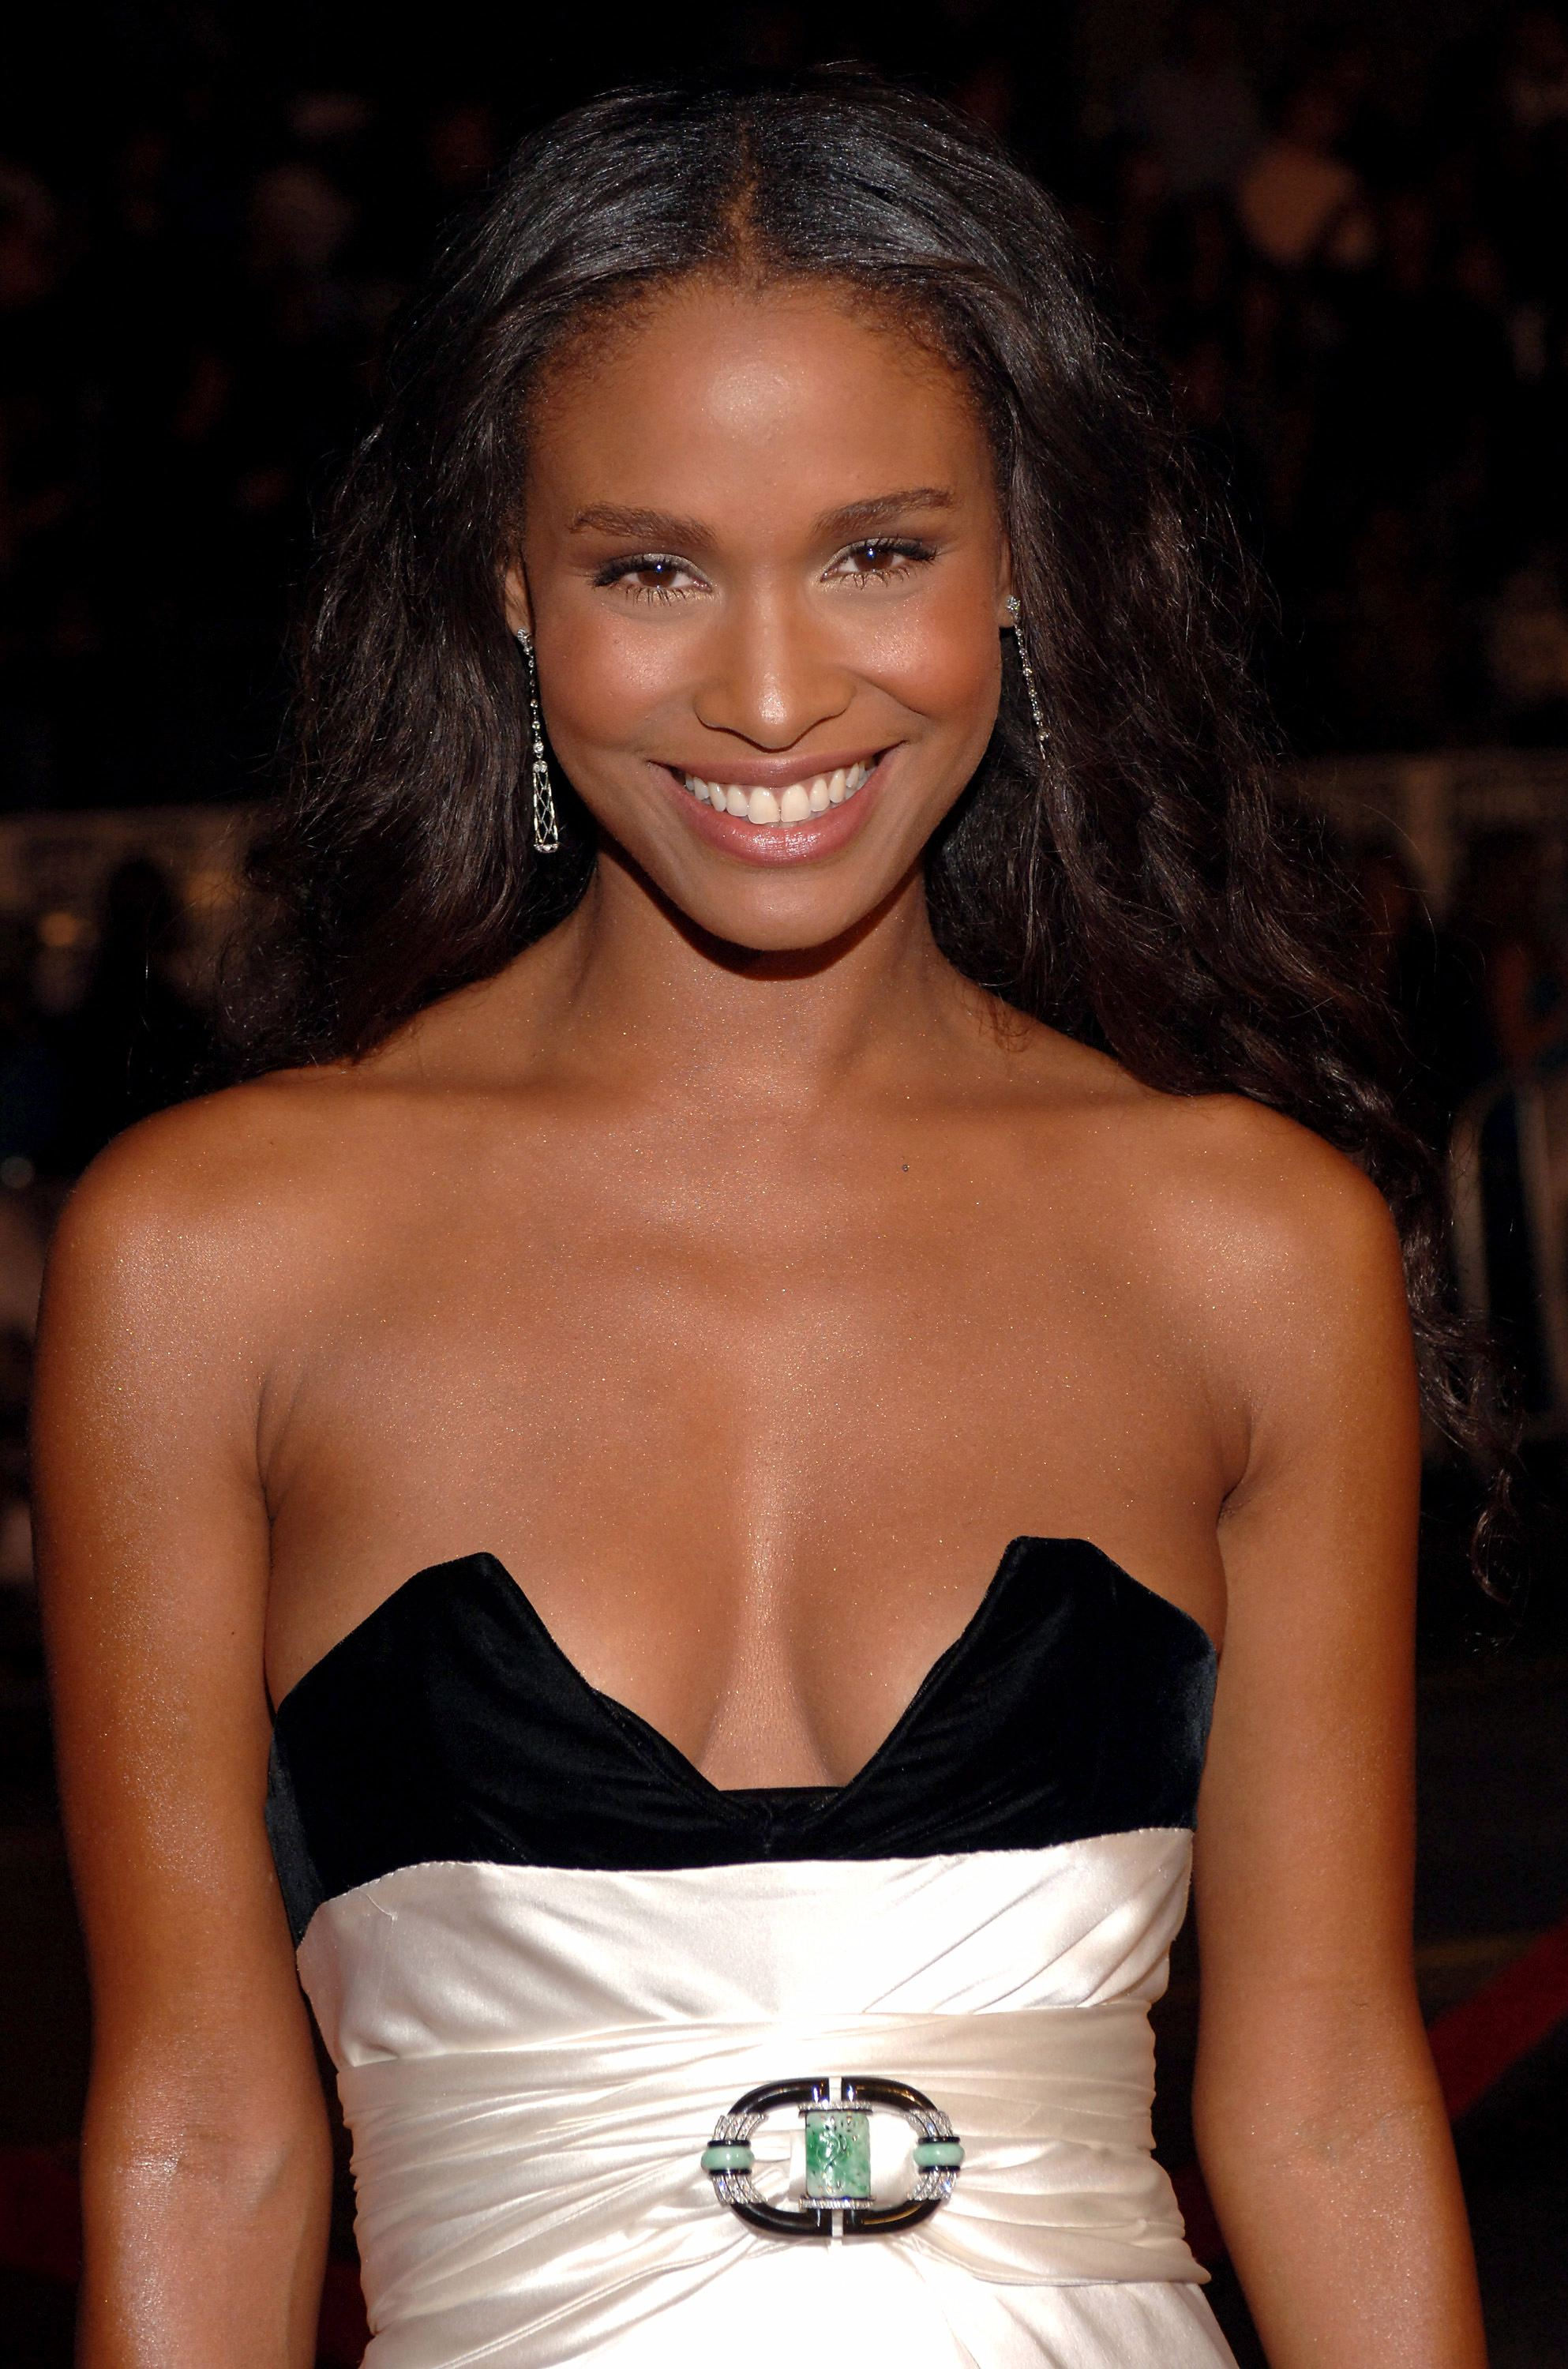 joy bryant pregnantjoy bryant instagram, joy bryant age, joy bryant wikipedia, joy bryant model, joy bryant, joy bryant david pope, joy bryant 2015, joy bryant husband, joy bryant pregnant, joy bryant net worth, joy bryant hot, joy bryant wedding, joy bryant movies, joy bryant imdb, joy bryant ethnicity, joy bryant height, joy bryant son, joy bryant and 50 cent, joy bryant parents